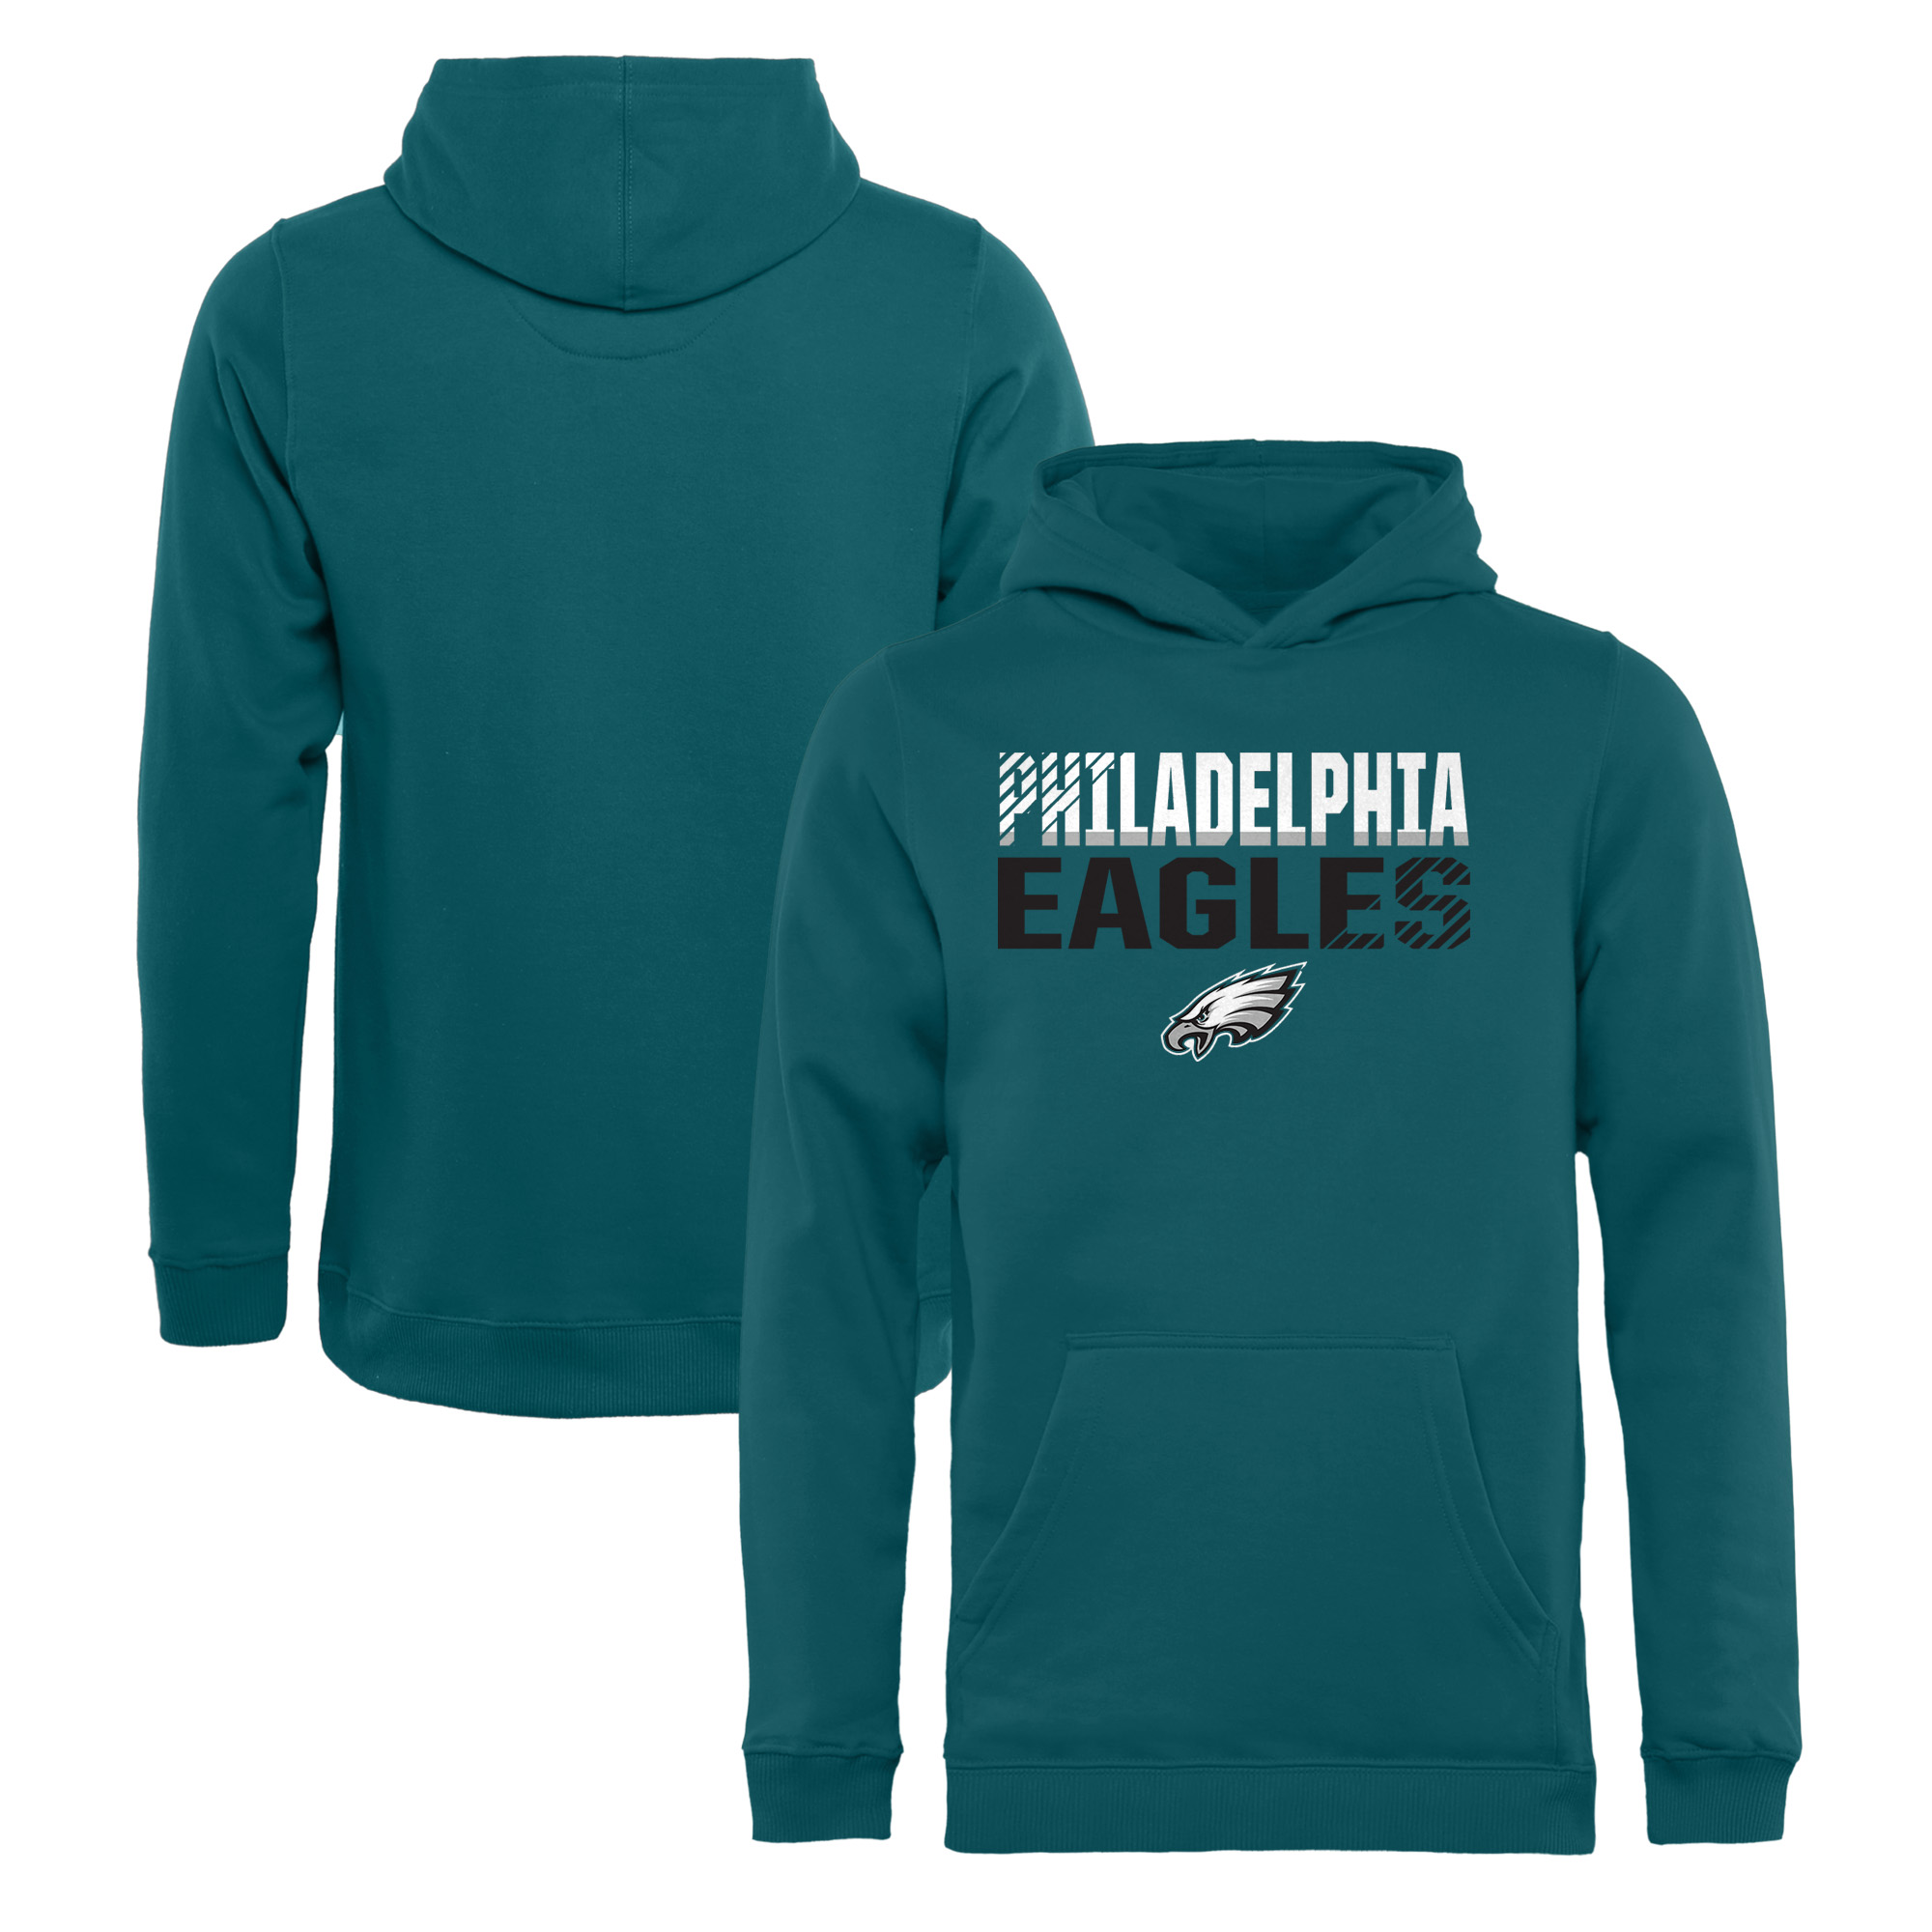 Philadelphia Eagles NFL Pro Line by Fanatics Branded Youth Iconic Collection Fade Out Pullover Hoodie - Midnight Green